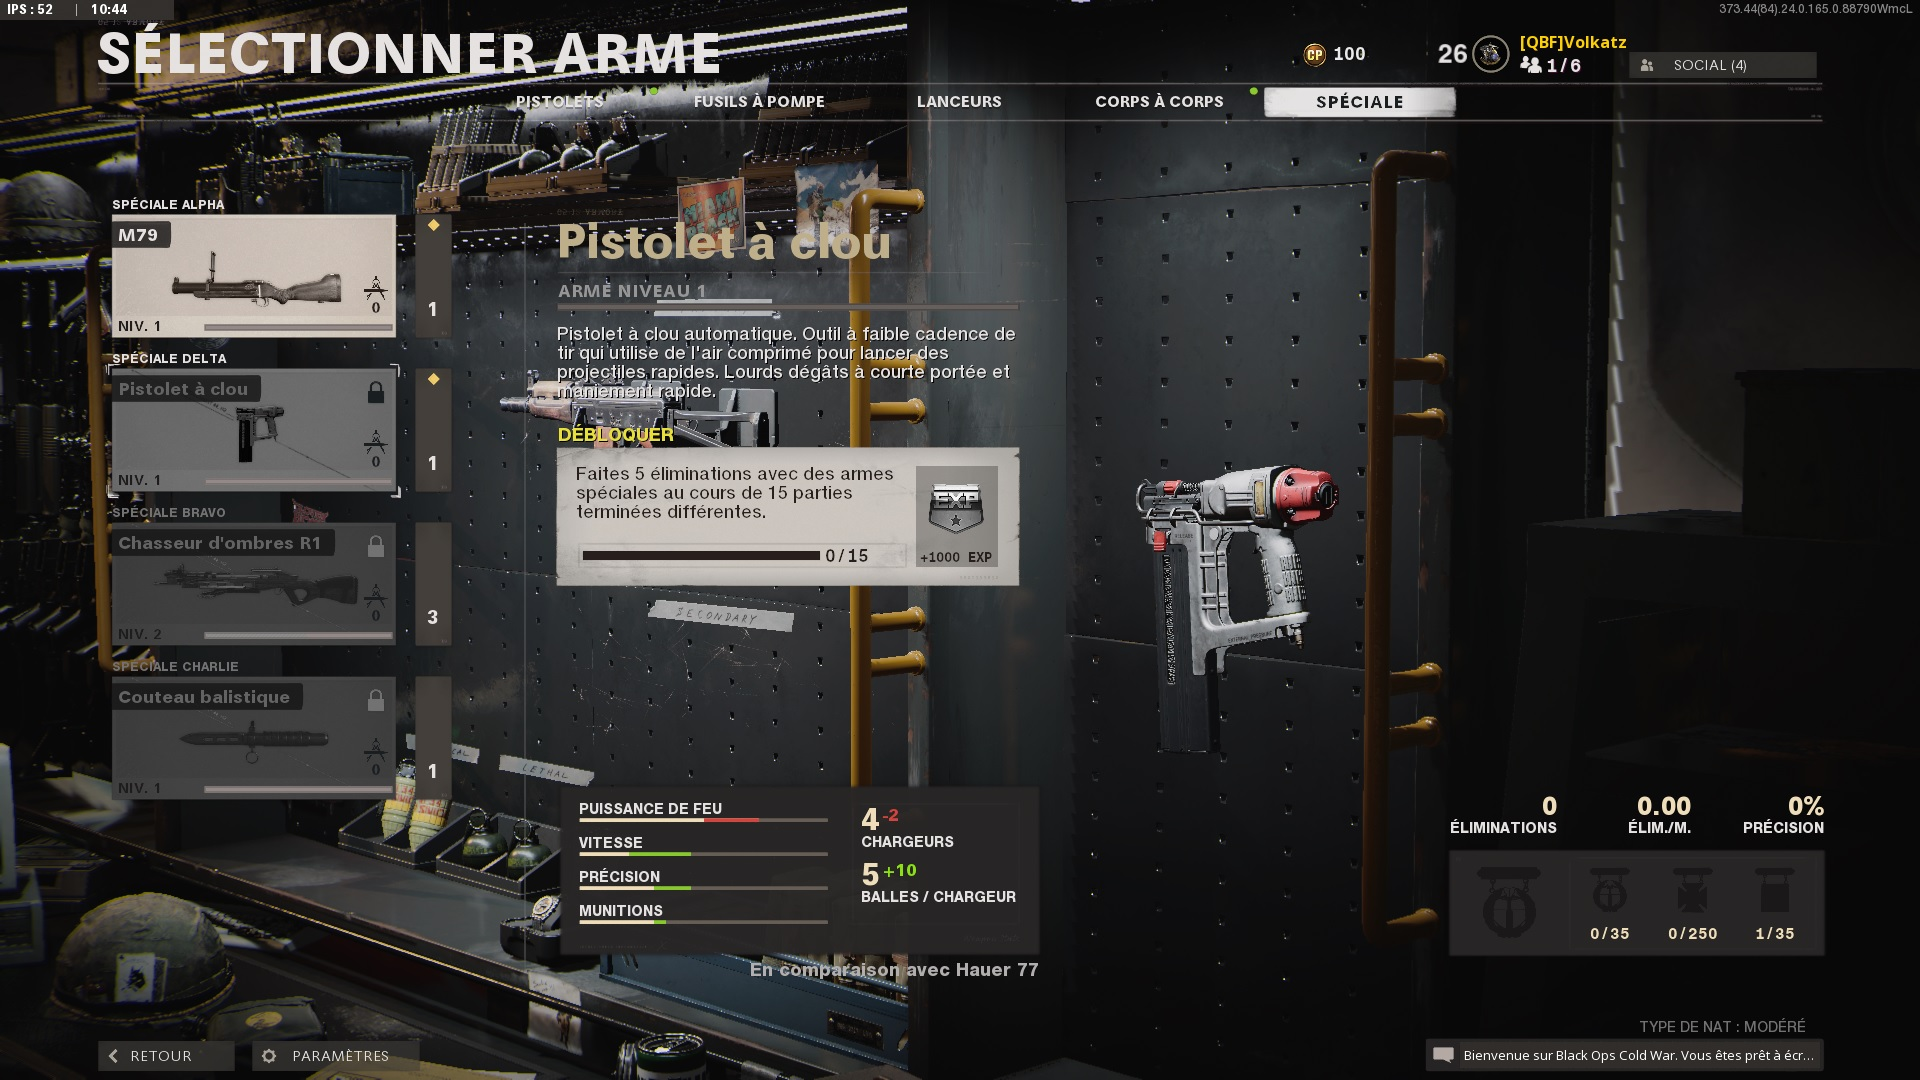 pistolet-clou-warzone-cold-war-arme-speciale-call-of-duty